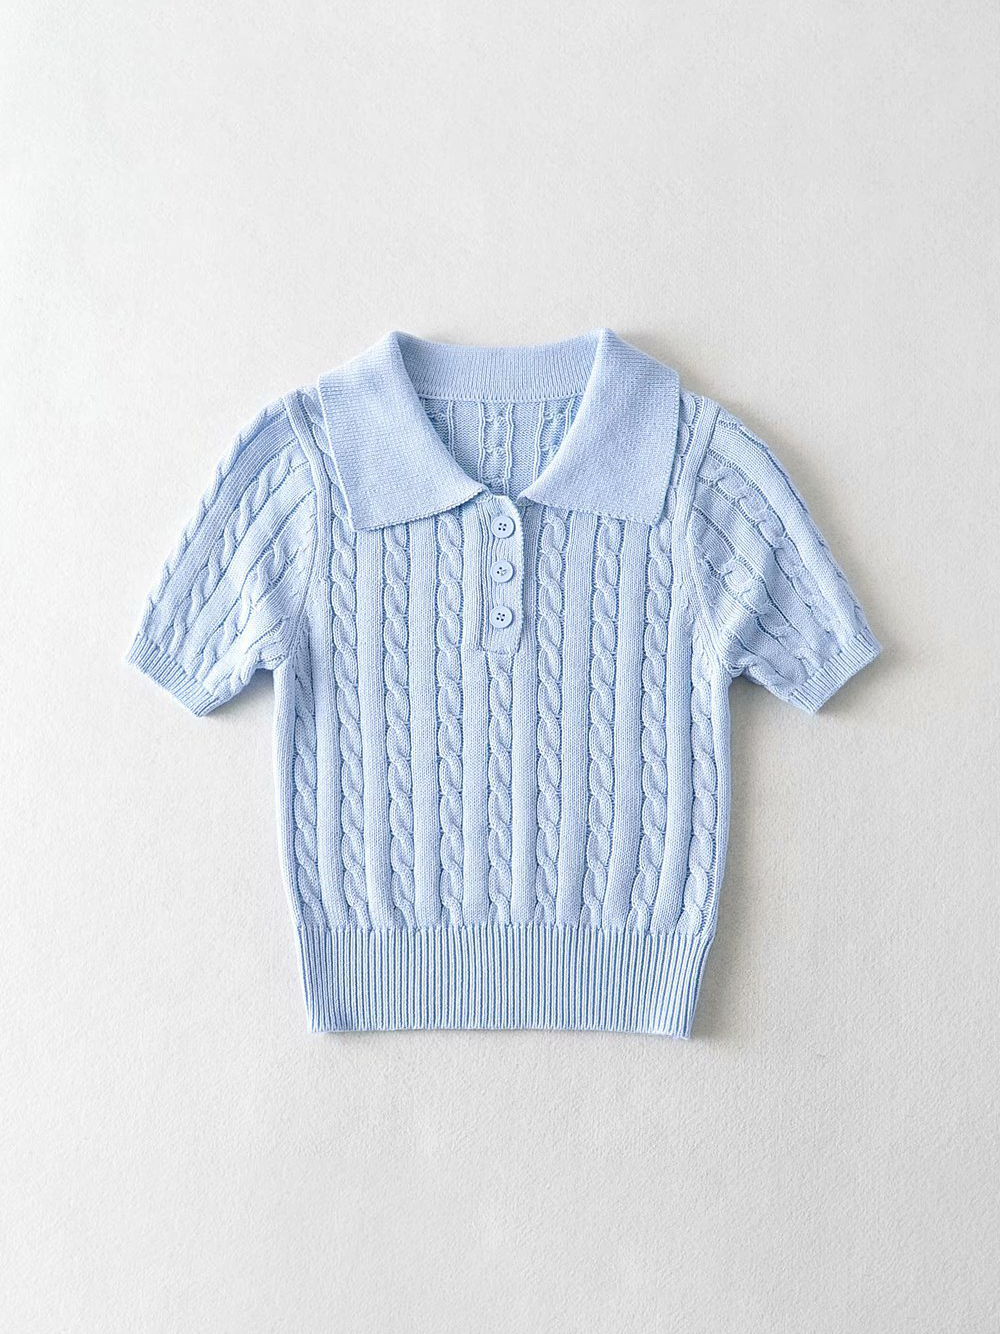 Vintage Solid Knitting Short Sleeve Cropped Blouse